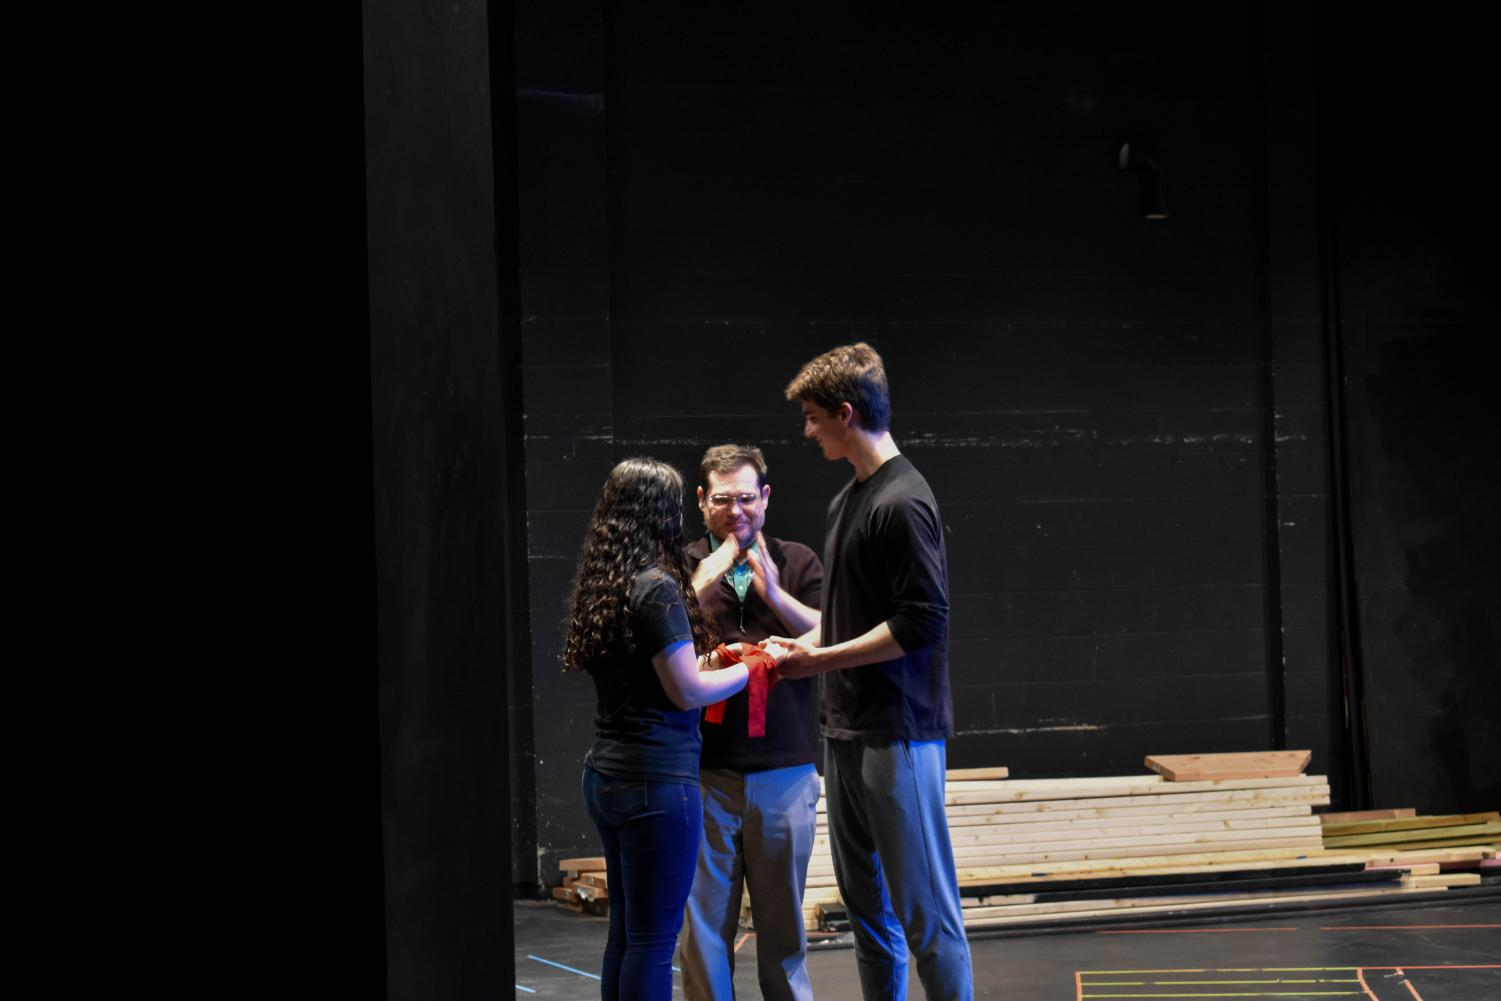 Second-year theater student Katie Laubert and former AACC theater student Jack Ven-ton, who will play Romeo and Juliet in the April production on campus, say they, too, have tragic love stories—sort of.